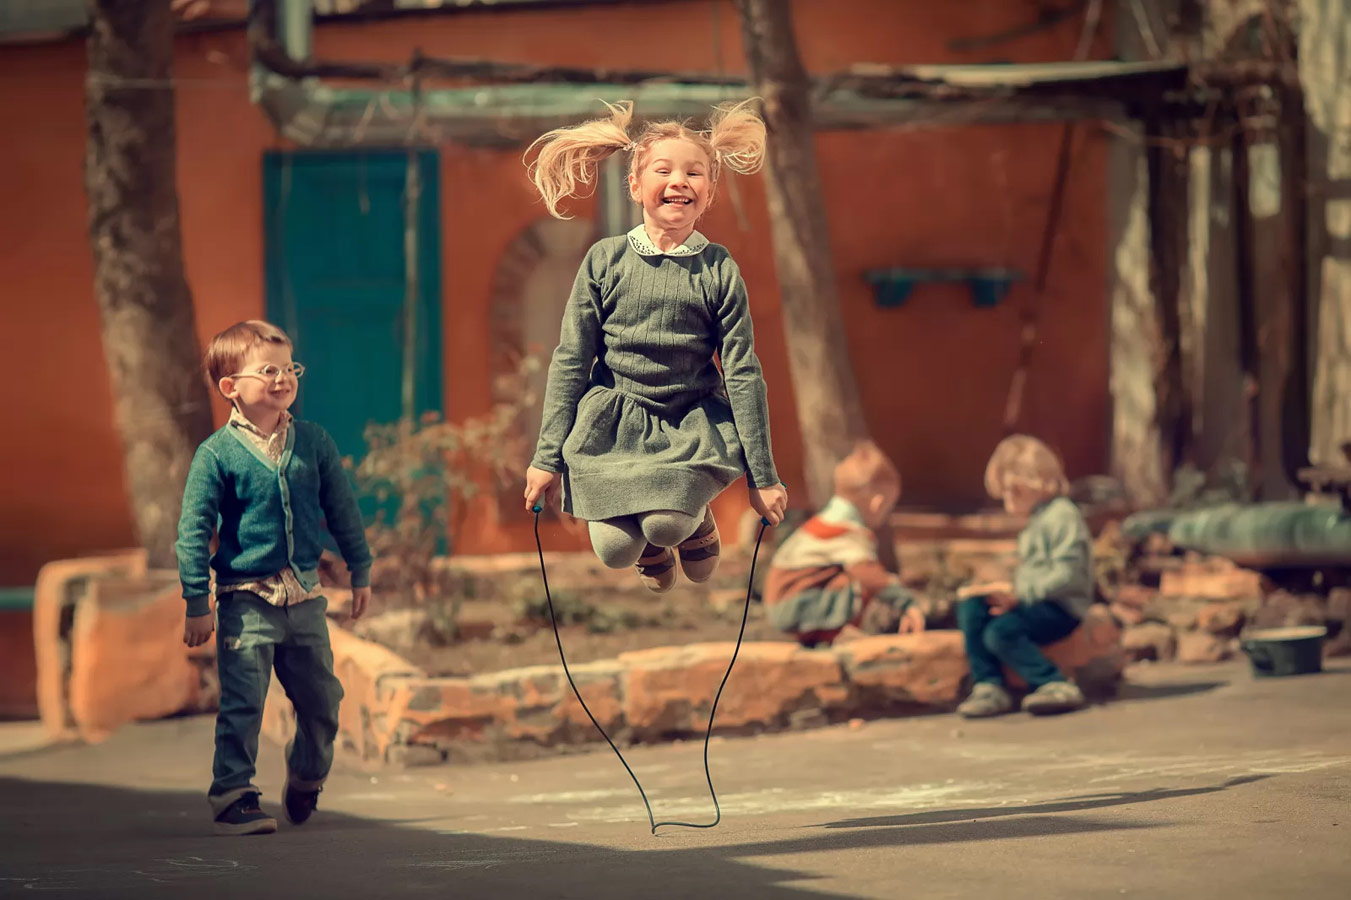 Jump Rope, © Marianna Smolina, Global Grand Prize Winner, Metro Photo Challenge